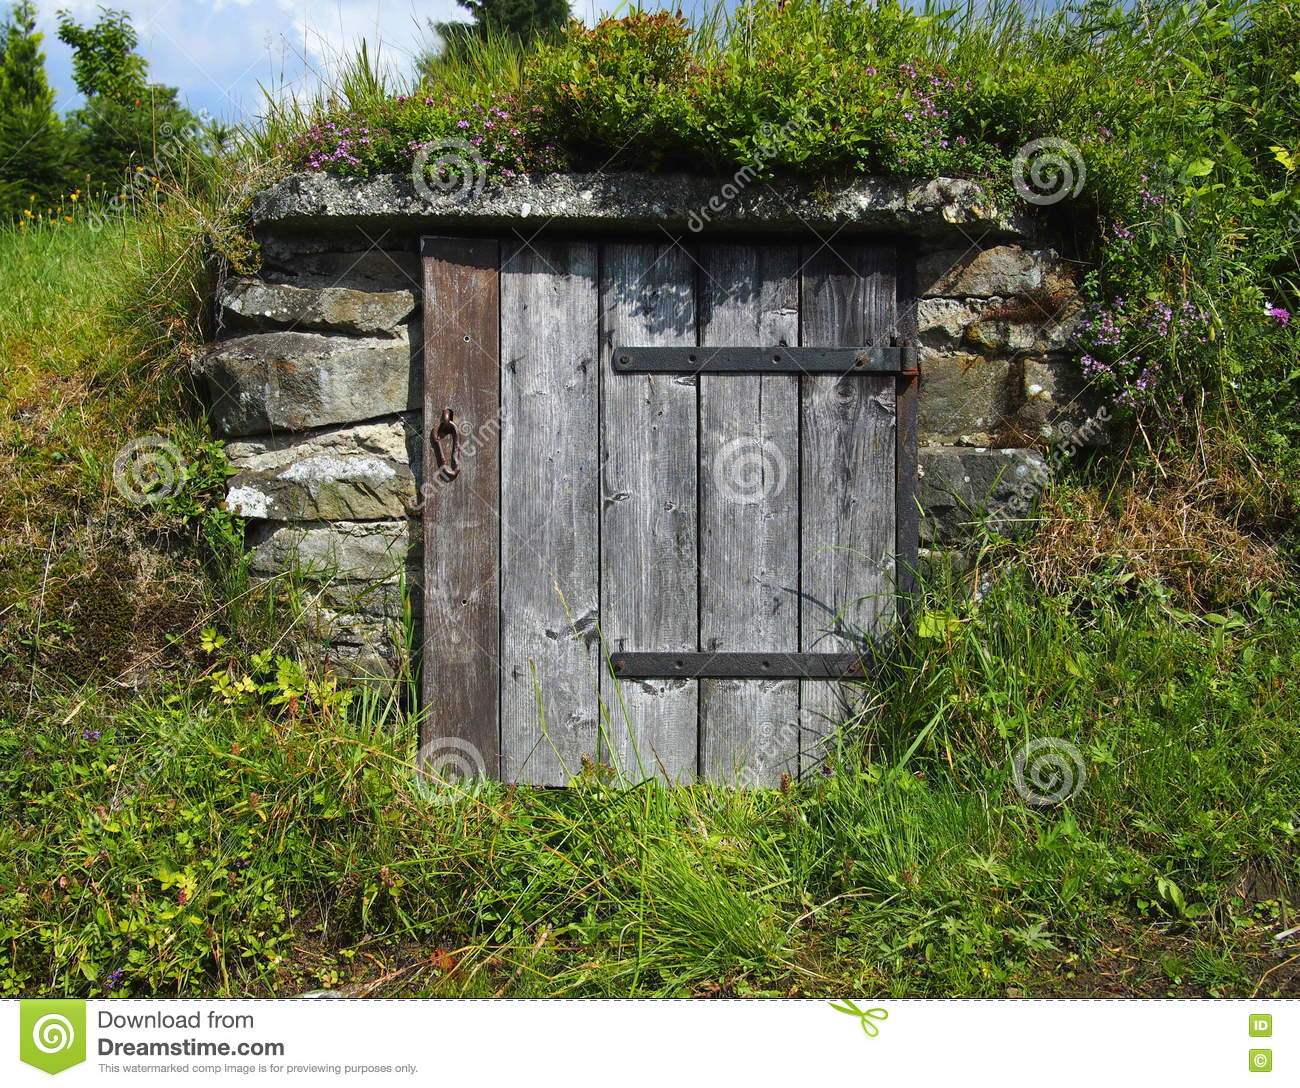 Old Wooden Door To A Mountain Spring Stock Photo - Image of wicket